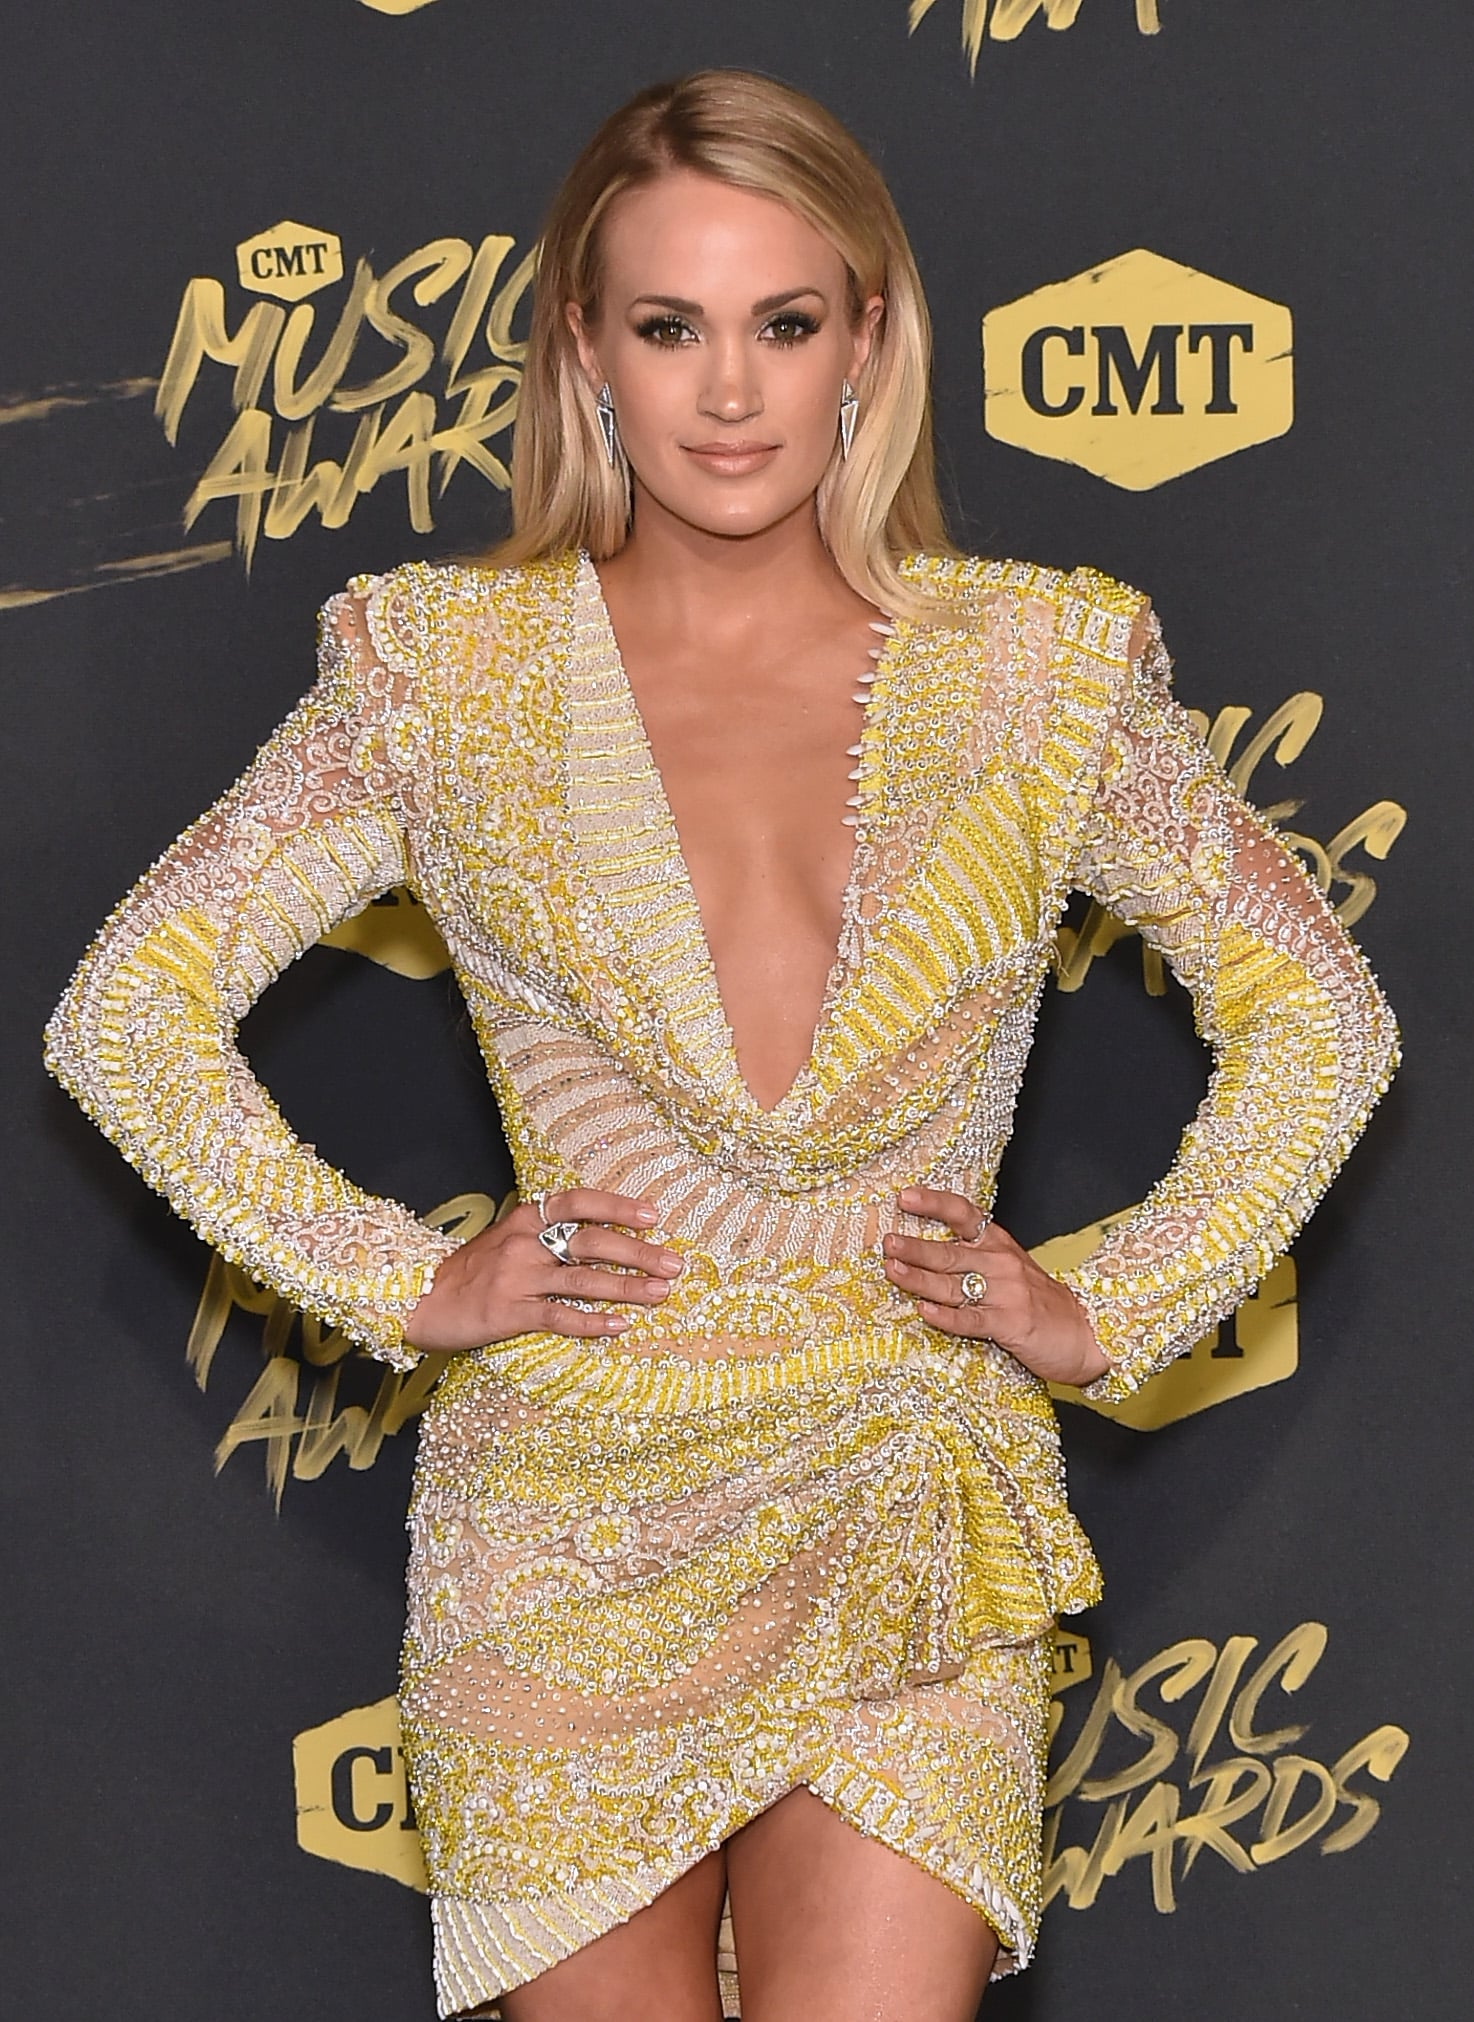 NASHVILLE, TN - JUNE 06:  Carrie Underwood attends the 2018 CMT Music Awards at Bridgestone Arena on June 6, 2018 in Nashville, Tennessee.  (Photo by Mike Coppola/Getty Images for CMT)